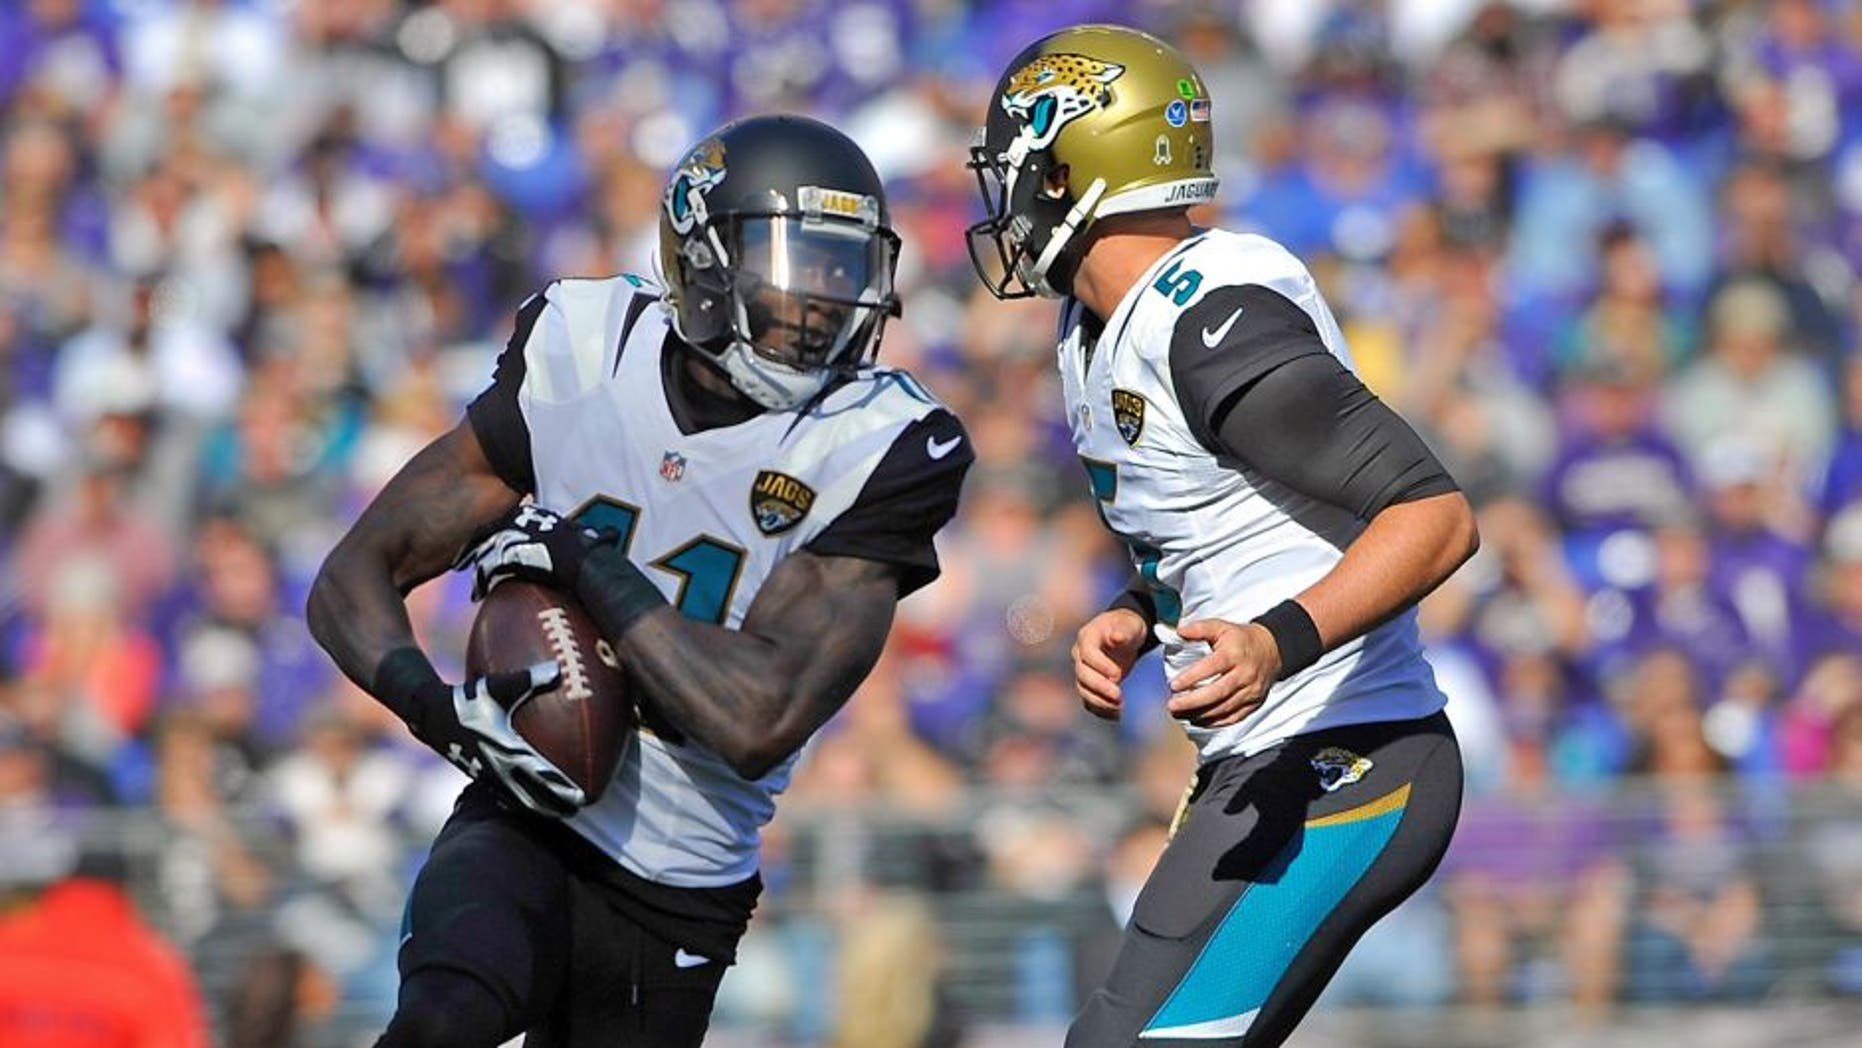 BALTIMORE, MD - NOVEMBER 15: Wide receiver Marqise Lee #11 of the Jacksonville Jaguars runs the ball against the Baltimore Ravens at M&T Bank Stadium on November 15, 2015 in Baltimore, Maryland. The Jaguars defeated the Ravens 22-20. (Photo by Larry French/Getty Images)